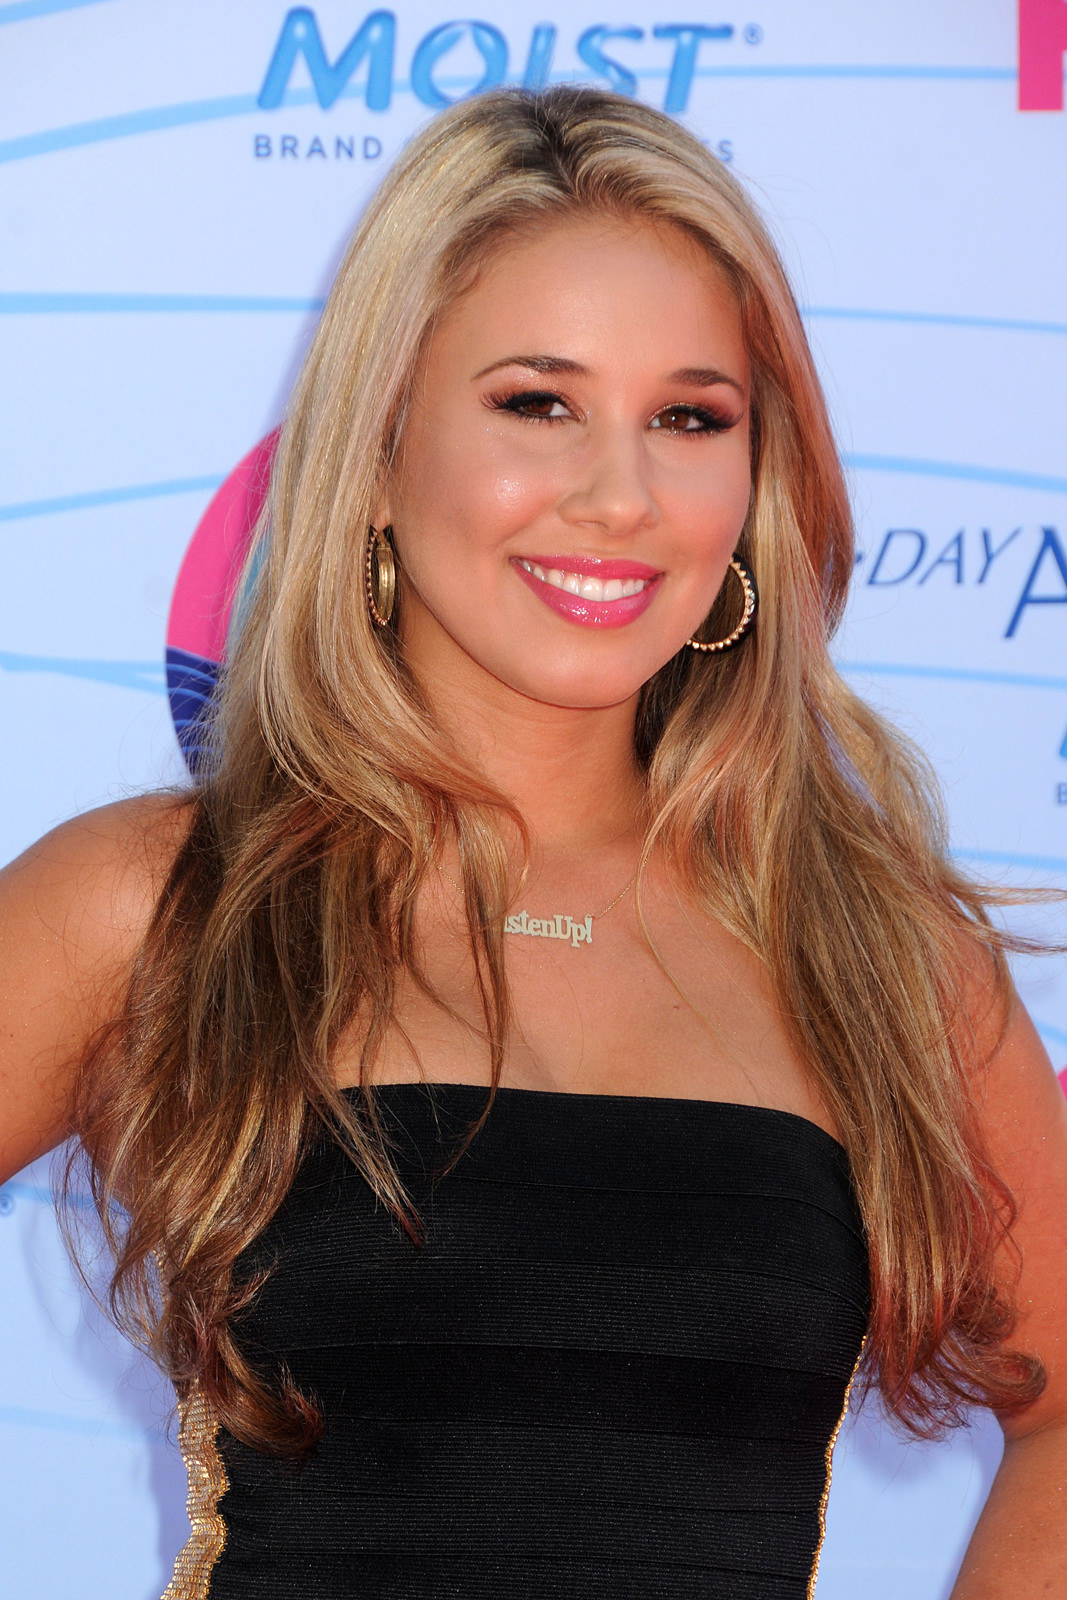 Haley Reinhart Photo Gallery